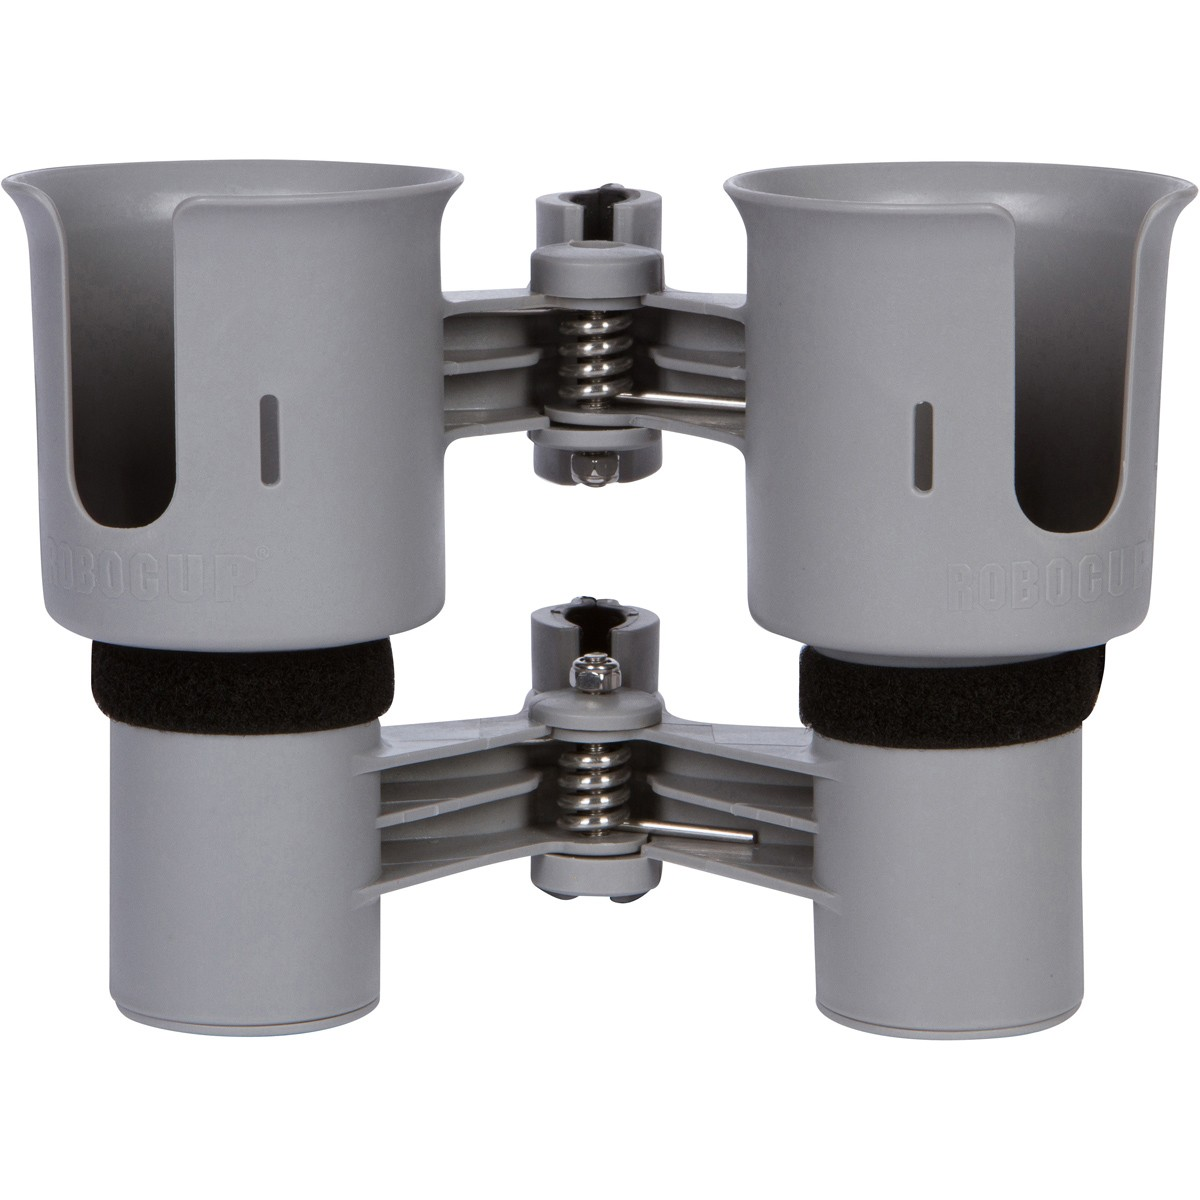 RoboCup Dual Cup Holder